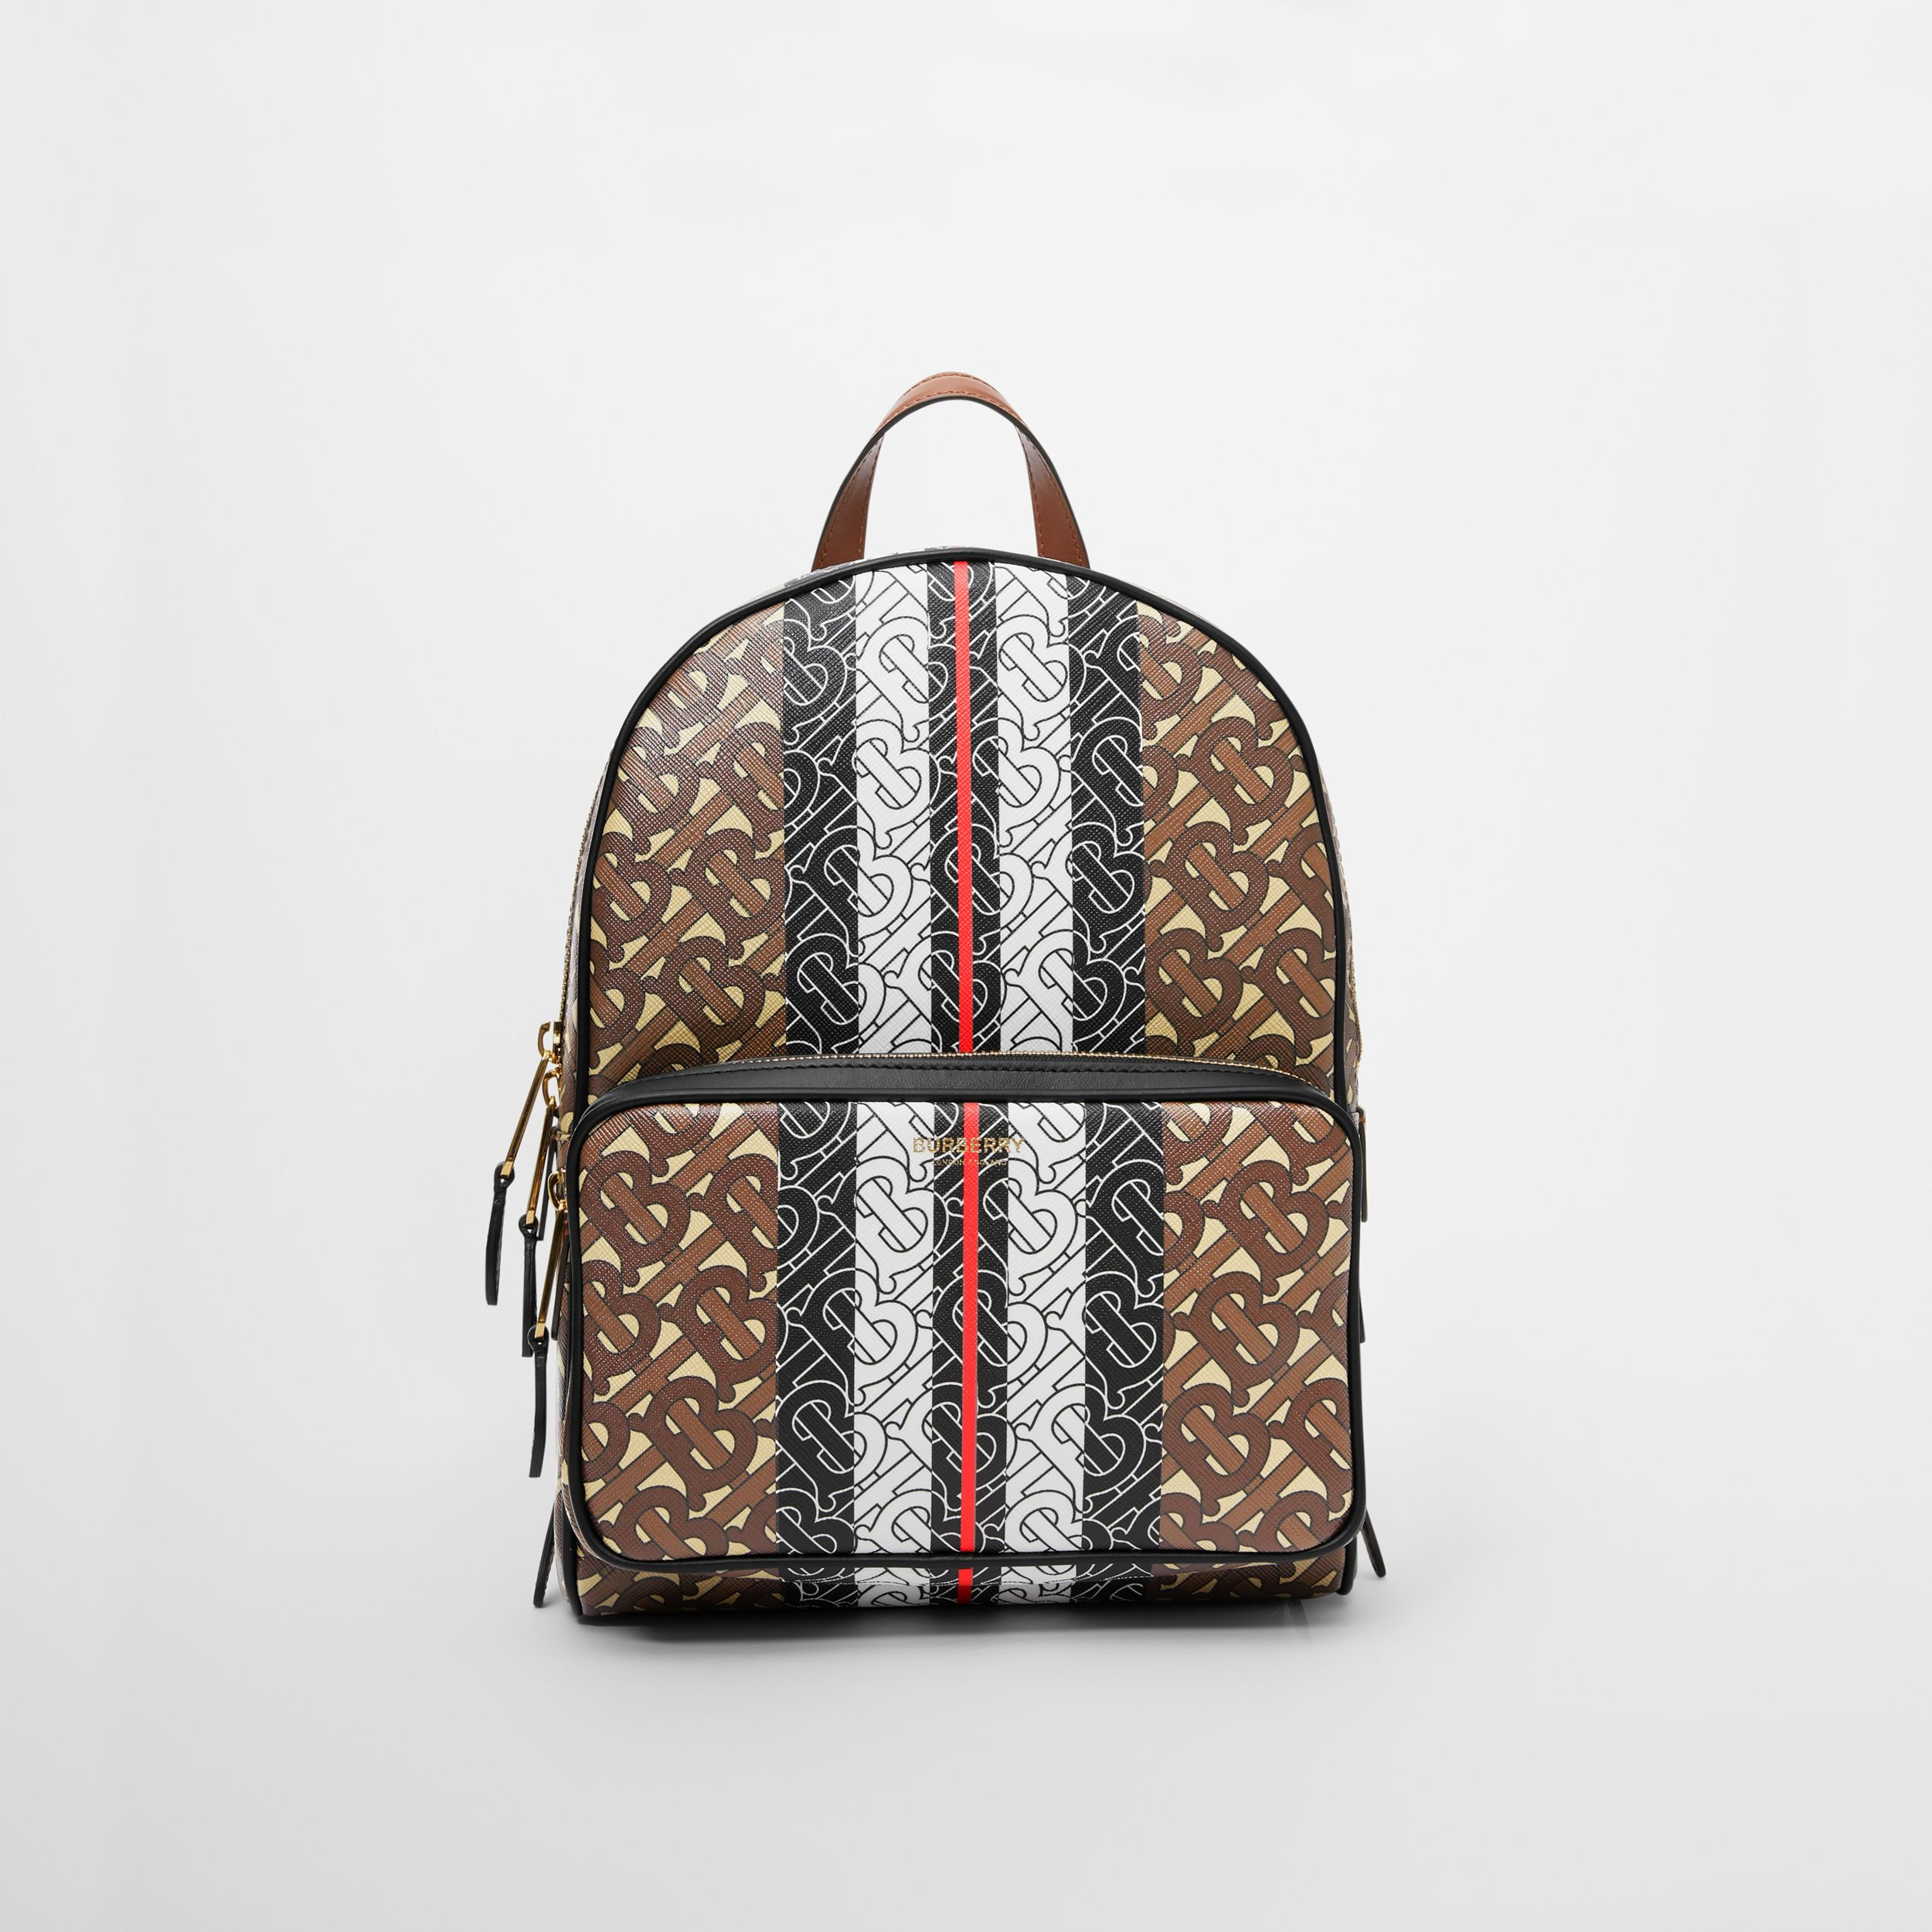 Monogram Stripe Print E-canvas Backpack in Bridle Brown | Burberry Hong Kong S.A.R. - 1